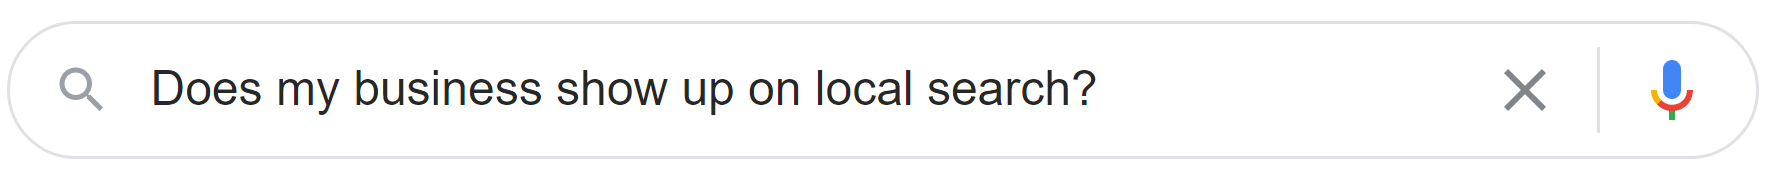 Google business location-related query to test where your business is ranked organically.